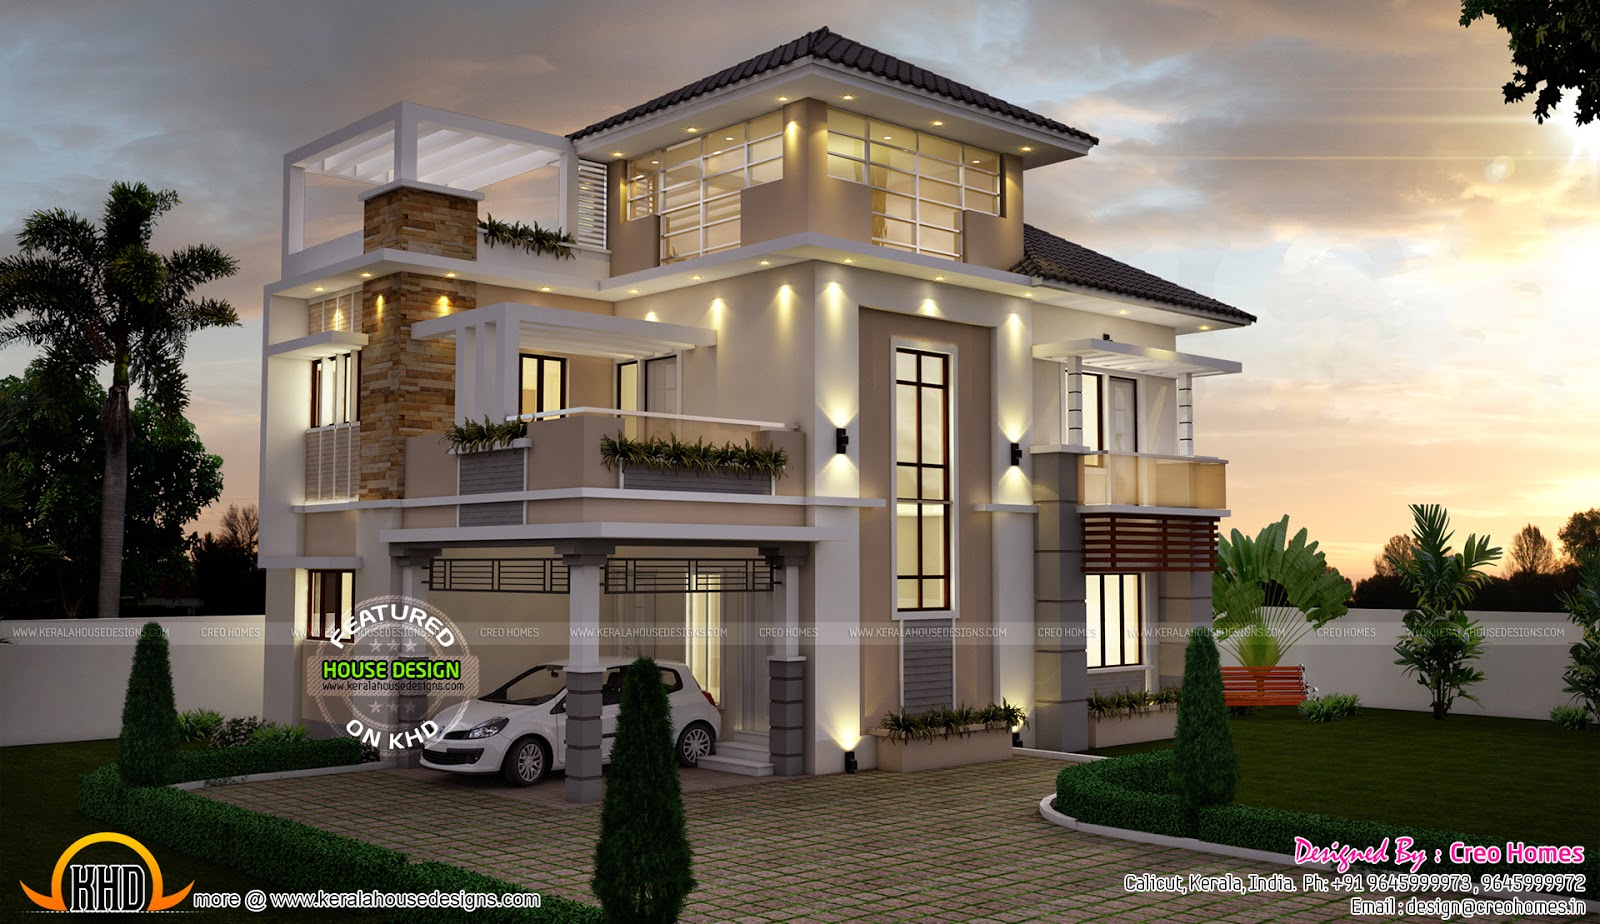 Super stylish contemporary house kerala home design and for Modern house designs images